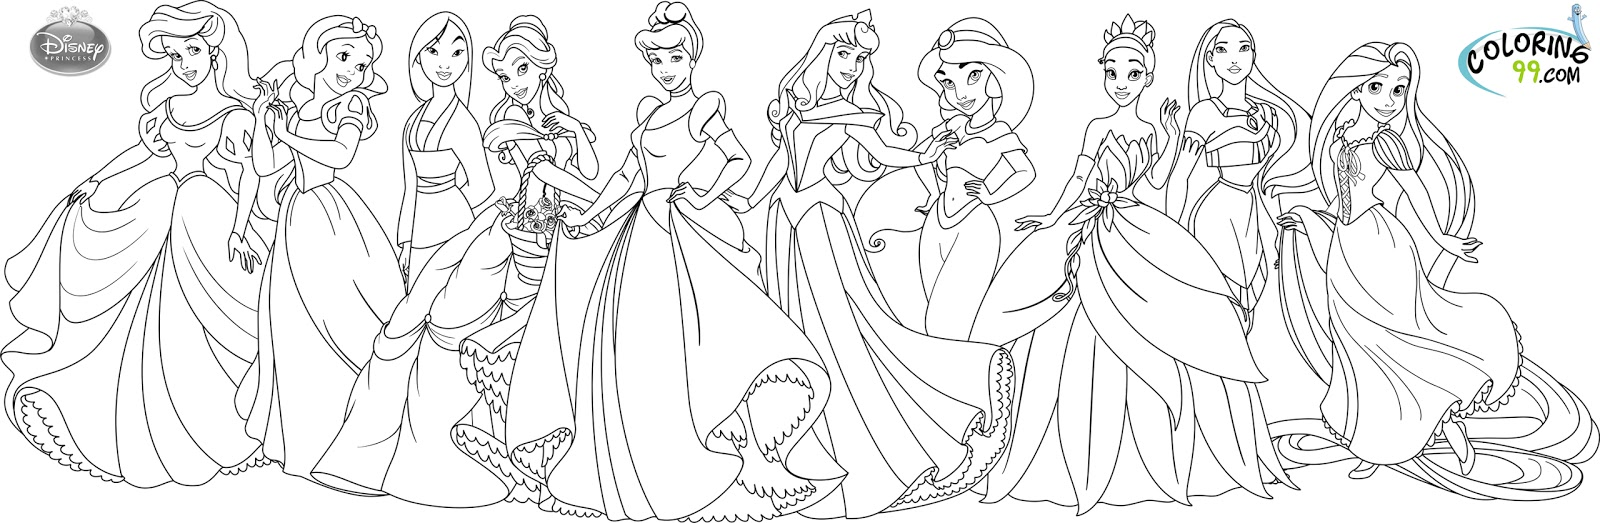 coloring book pages disney princesses - photo#12